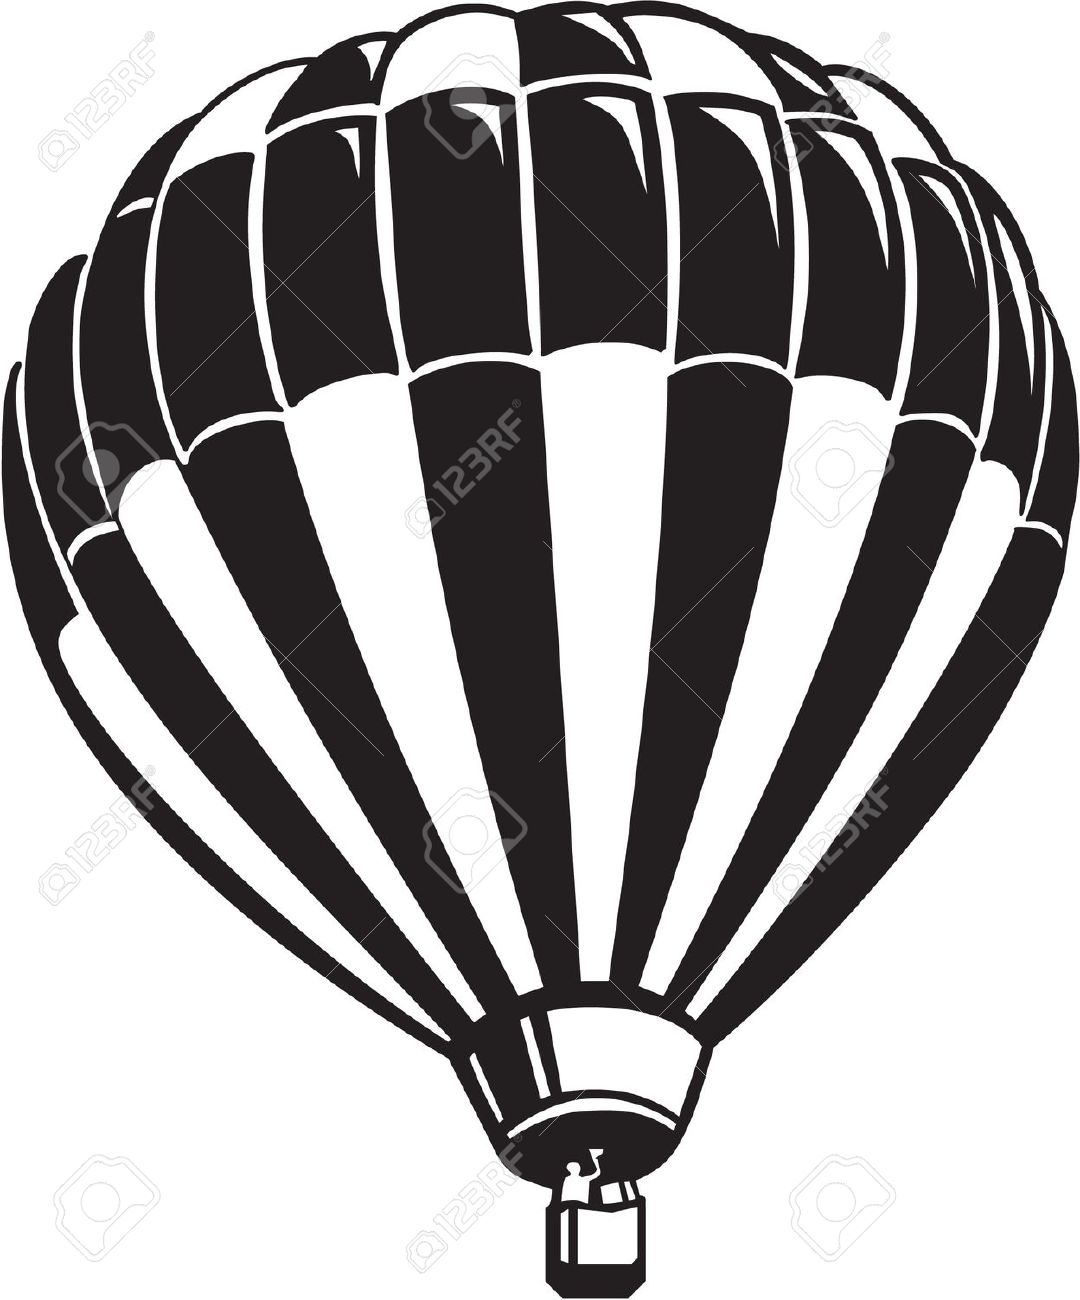 1080x1300 Hot Air Balloon Clipart Globo